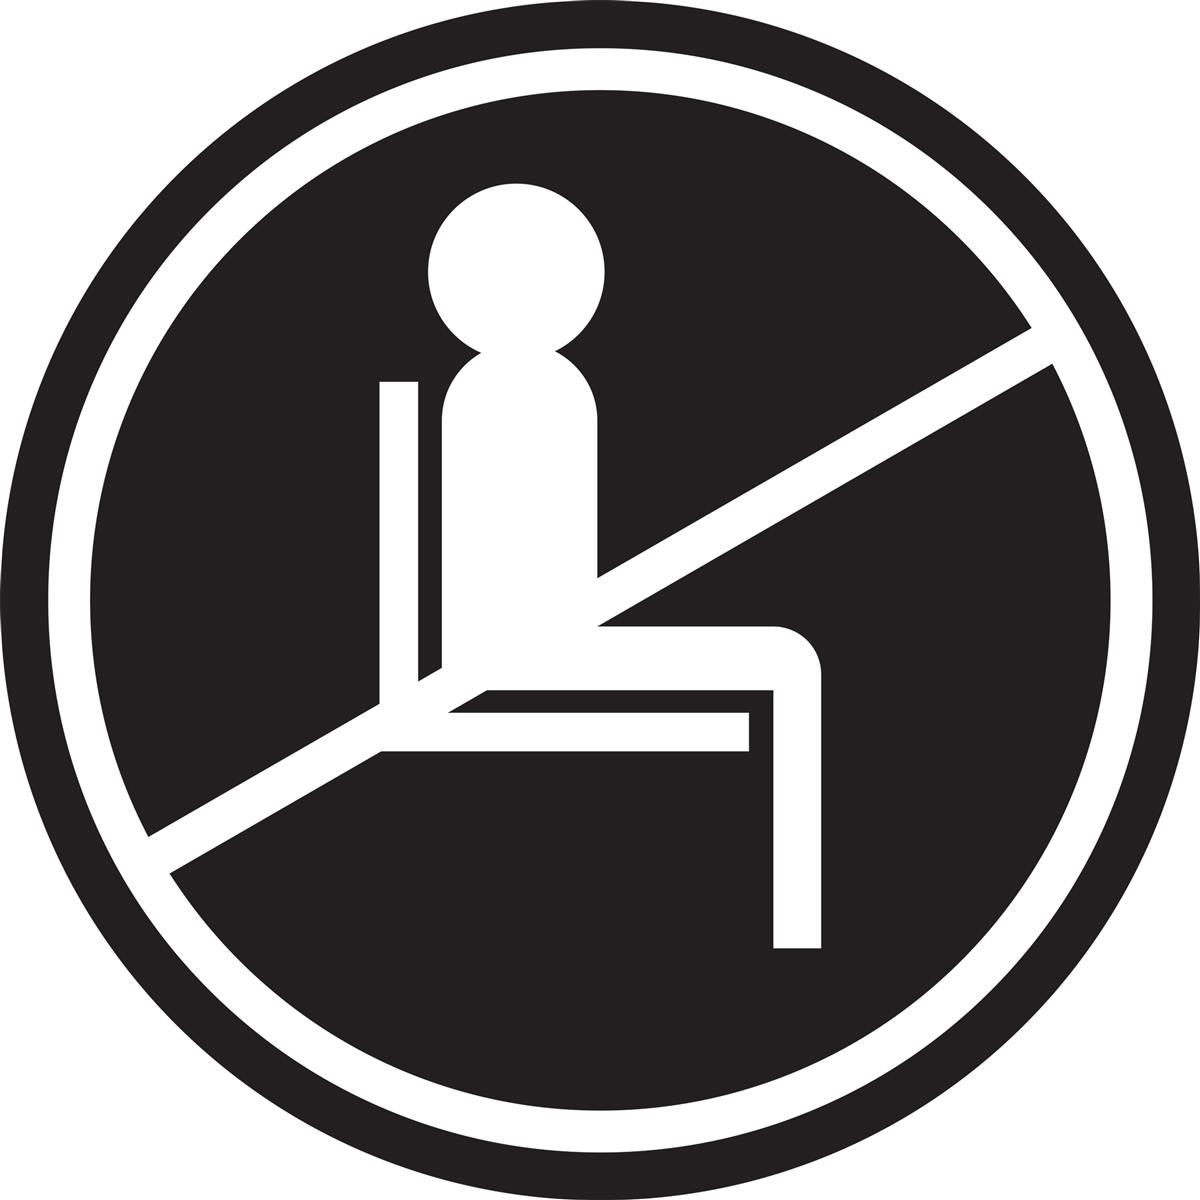 Black do not use seating sticker with removable self-adhesive backing